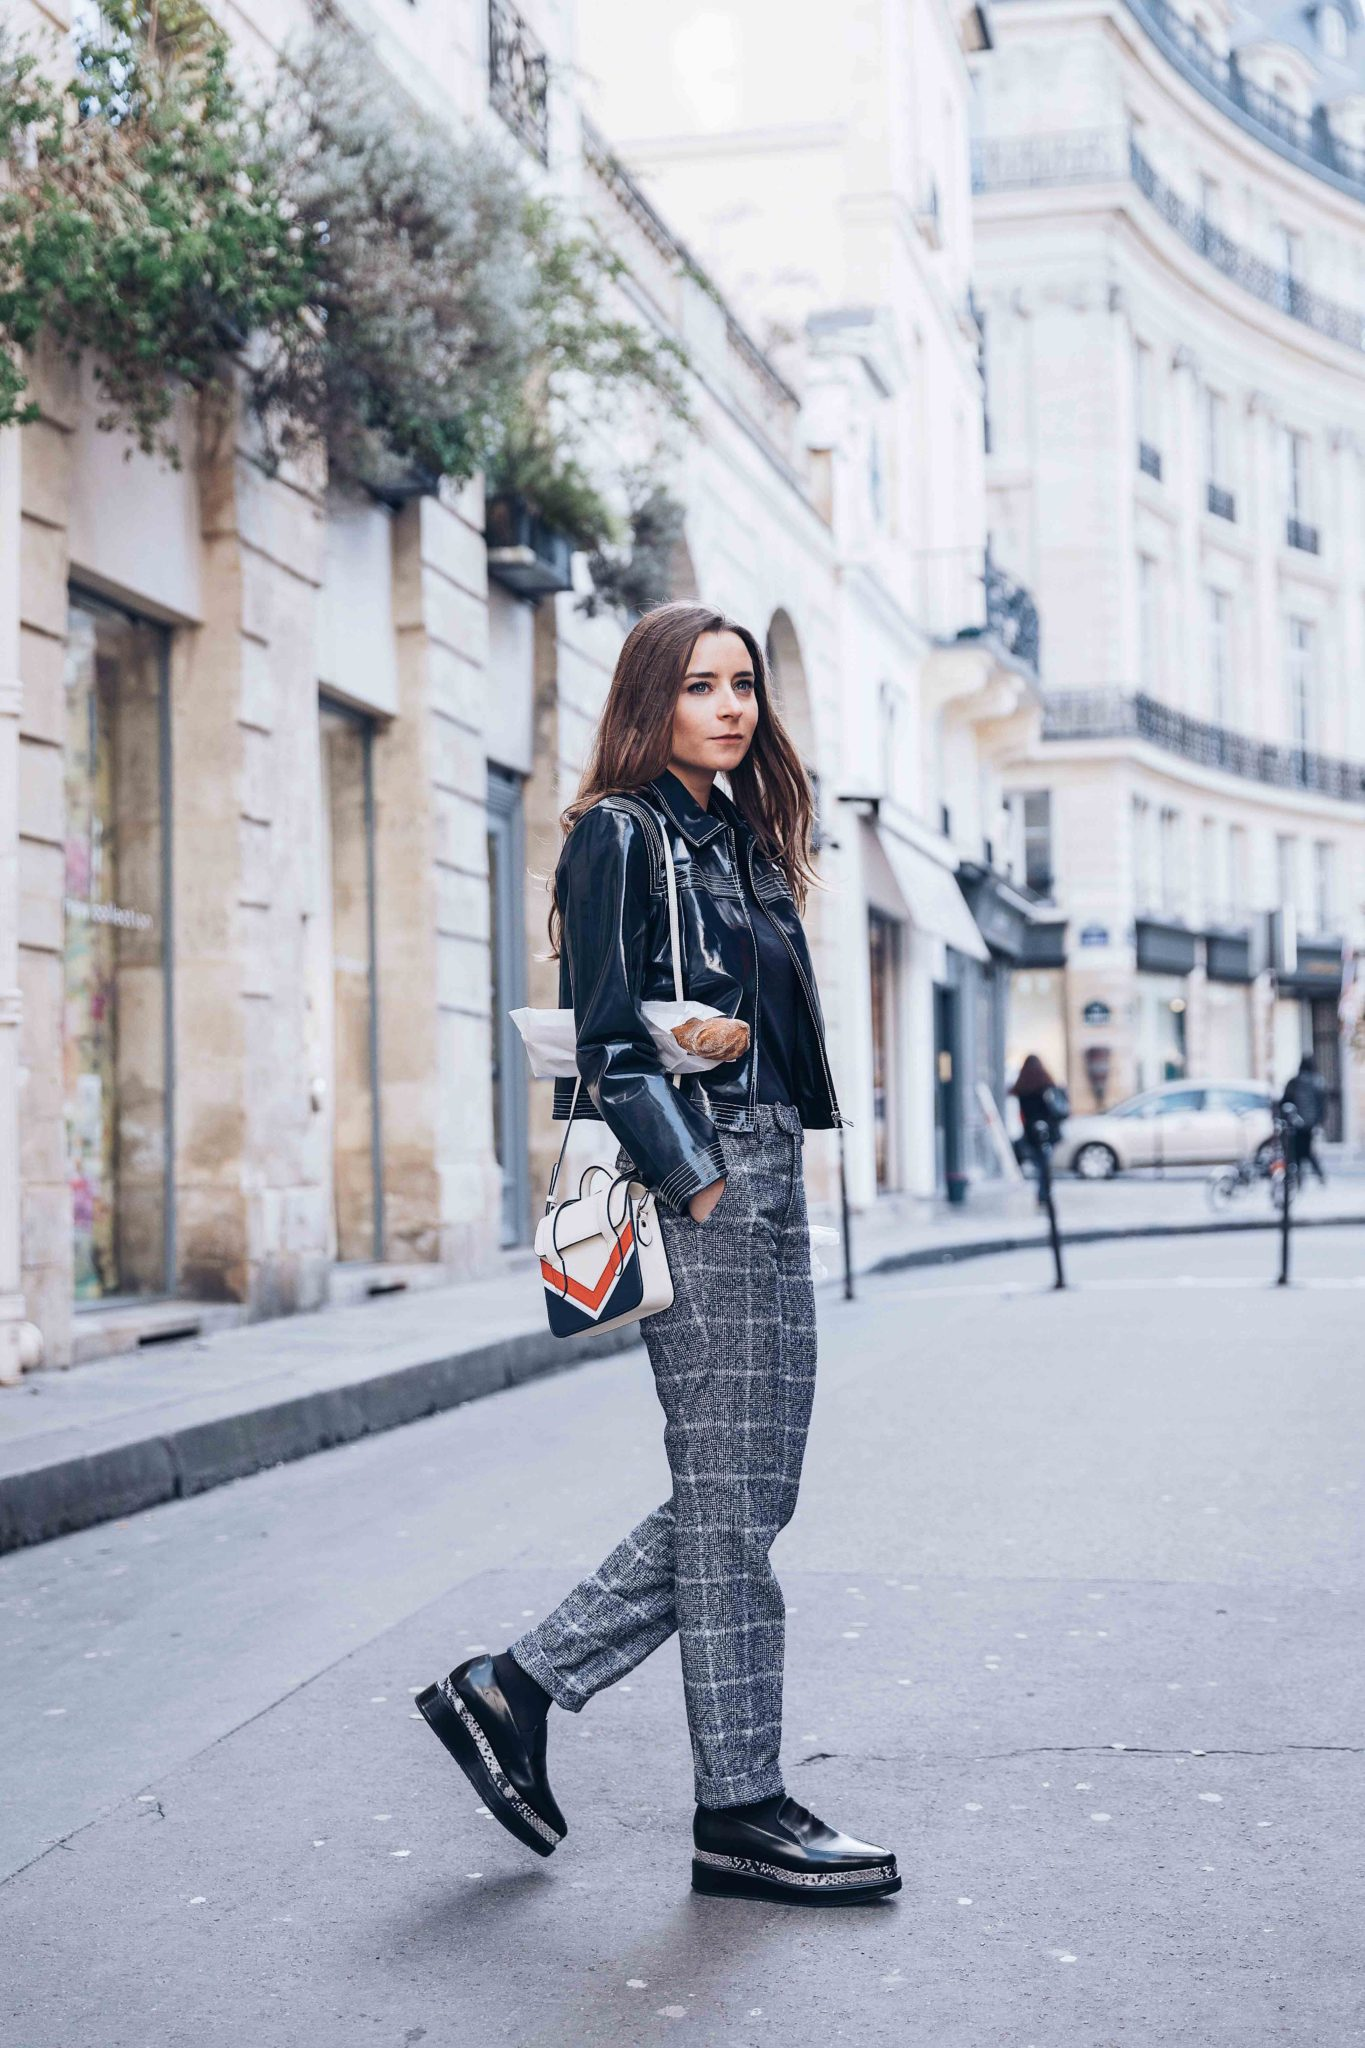 Parisian style by Julia Comil French Fashion Blogger Wearing Seven All Around Platform Loafers - Strathberry Bag - Suistudio check pants - Ganni Patent cropped jacket - Save to read more about Seven all around review on Houseofcomil.com